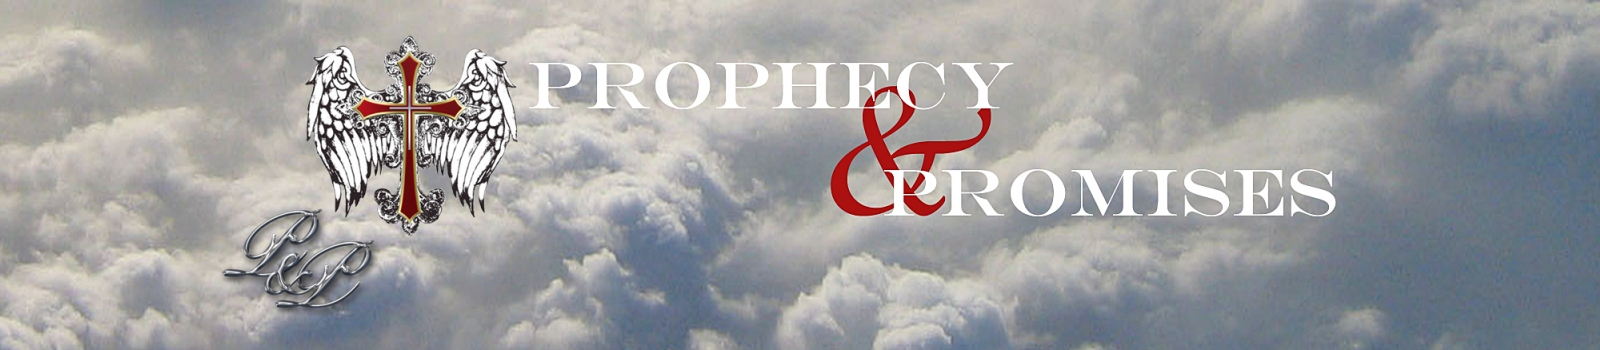 Prophecy and Promises Homepage